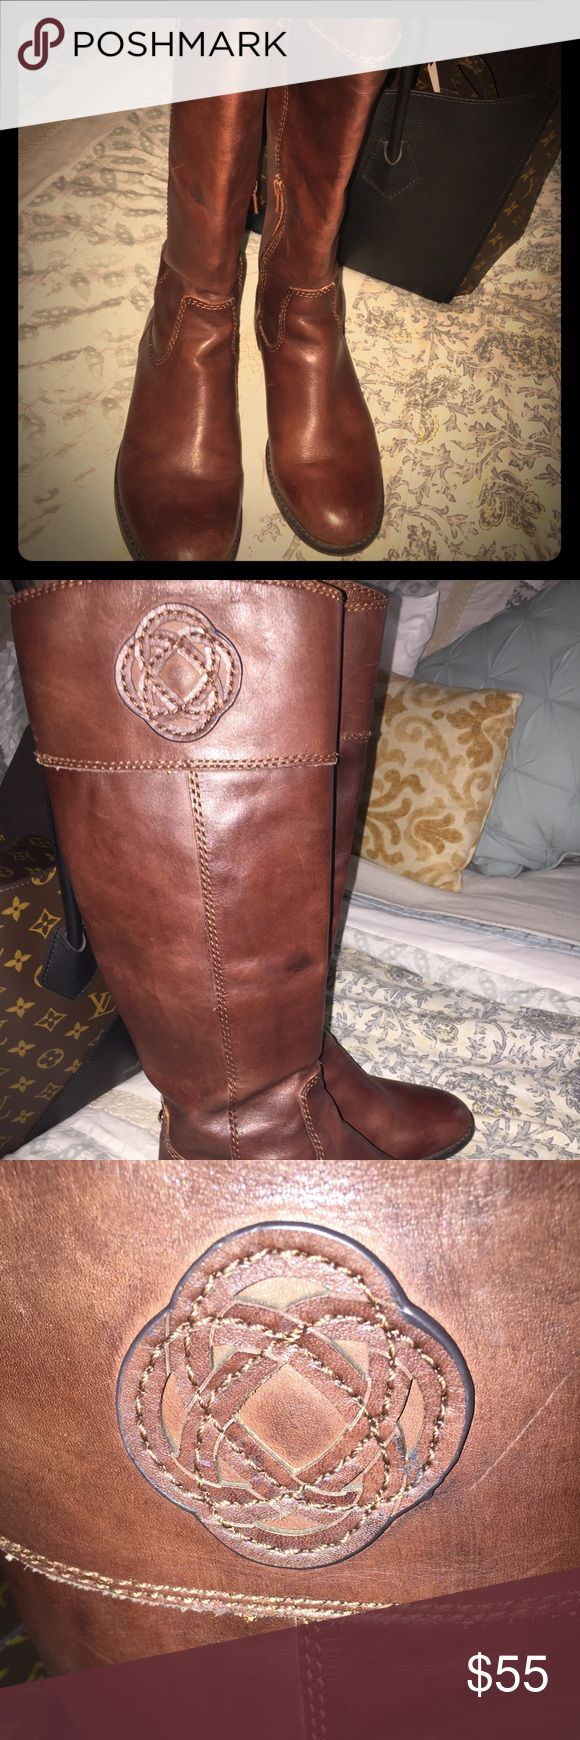 Lady's leather boots Antonio Melani lady's leather boots size 6 preloved very nice riding boots ANTONIO MELANI Shoes